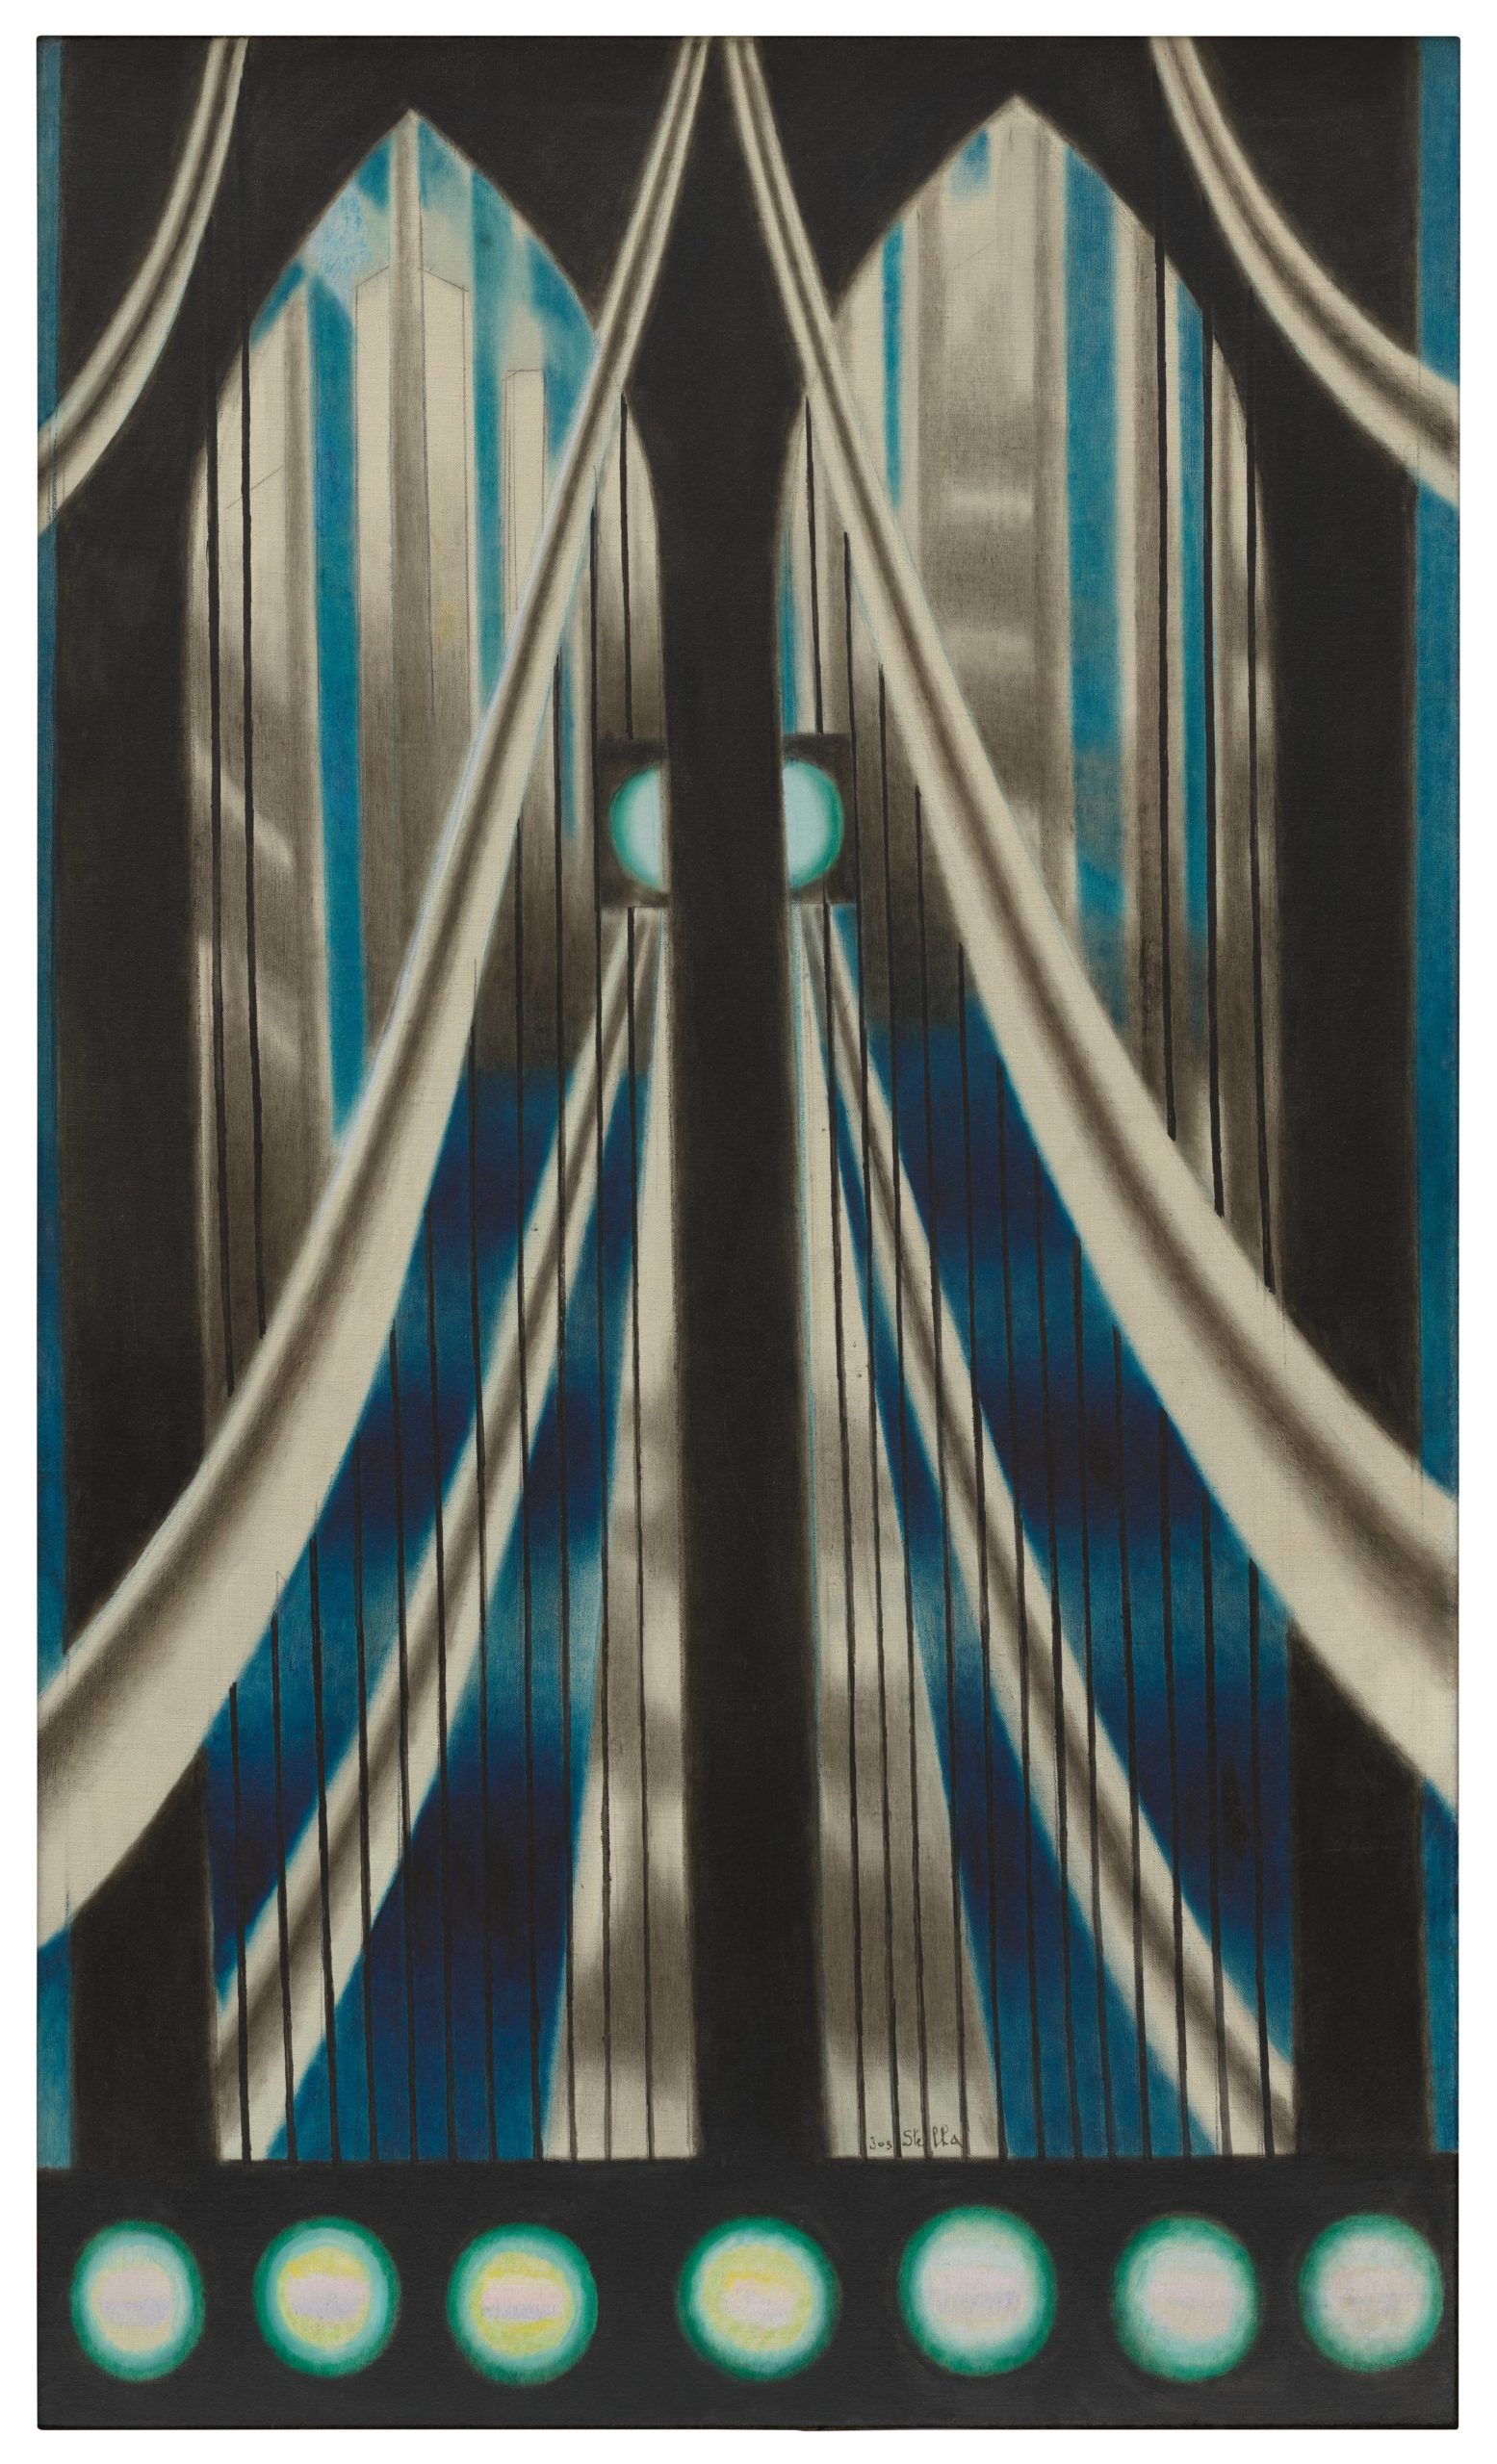 <p>This four-foot-tall, two-and-a-half foot wide oil painting places us inside a streamlined suspension bridge, looking from one end to the other. The perfectly centered perspective and the bridge's structure make the painting nearly symmetrical. Thick, smooth, cables swoop in from the lower edges of the canvas as they arch up toward the center. Off of the cables hang thin black wires that stretch down toward the bottom of the painting. On either side of the center are gothic archways, through which shiny silver towers and a blue sky can be found. Framing the bottom of the painting is a horizontal black bar, adorned with a row of seven glowing circles. A matching circle, which is split in two by the vertical line between the archways, hangs two-thirds of the way up the canvas.</p>